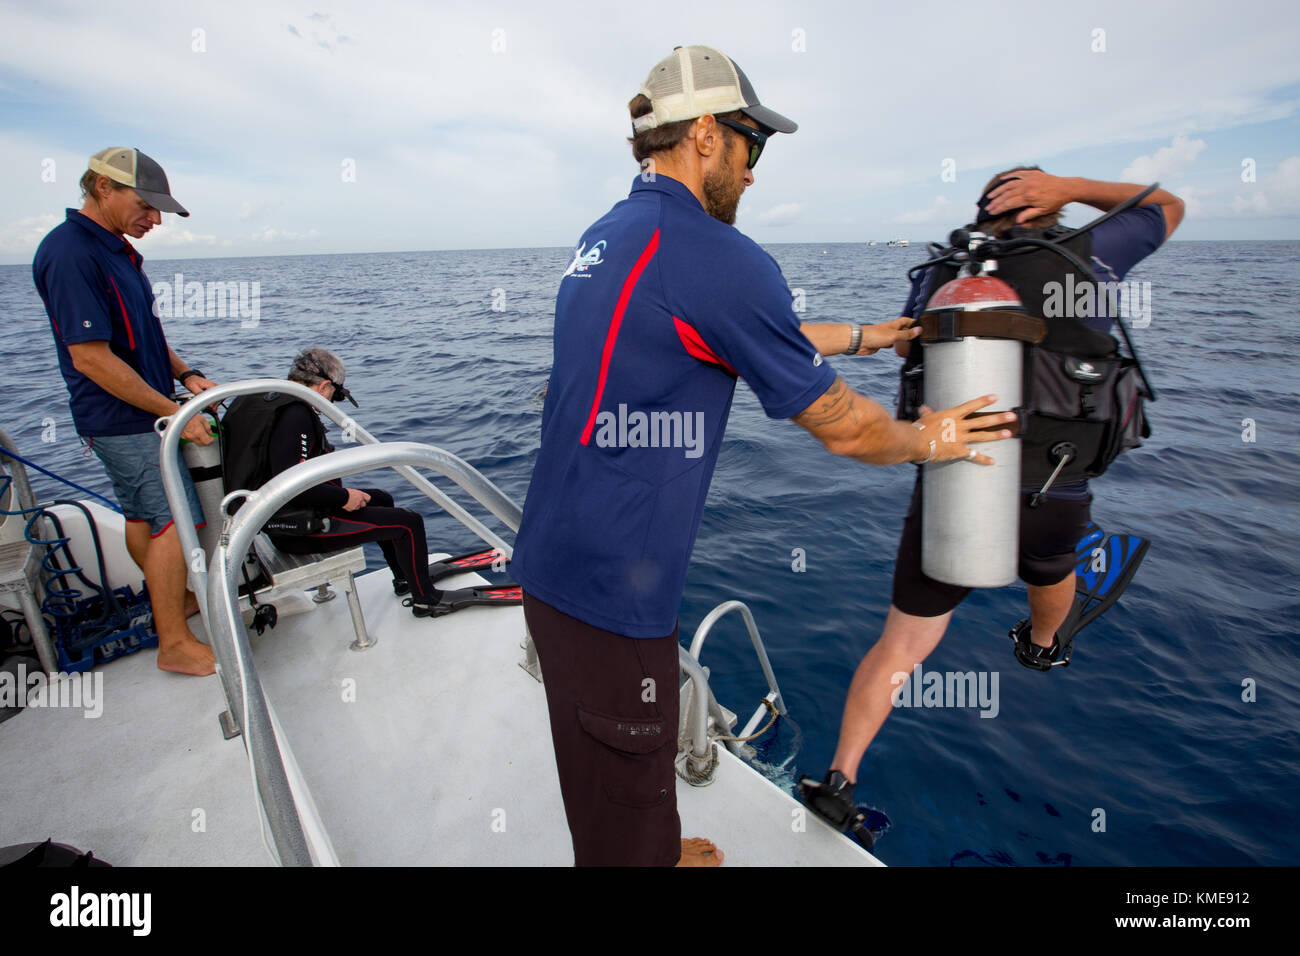 Boat crew assists scuba divers entering water Stock Photo